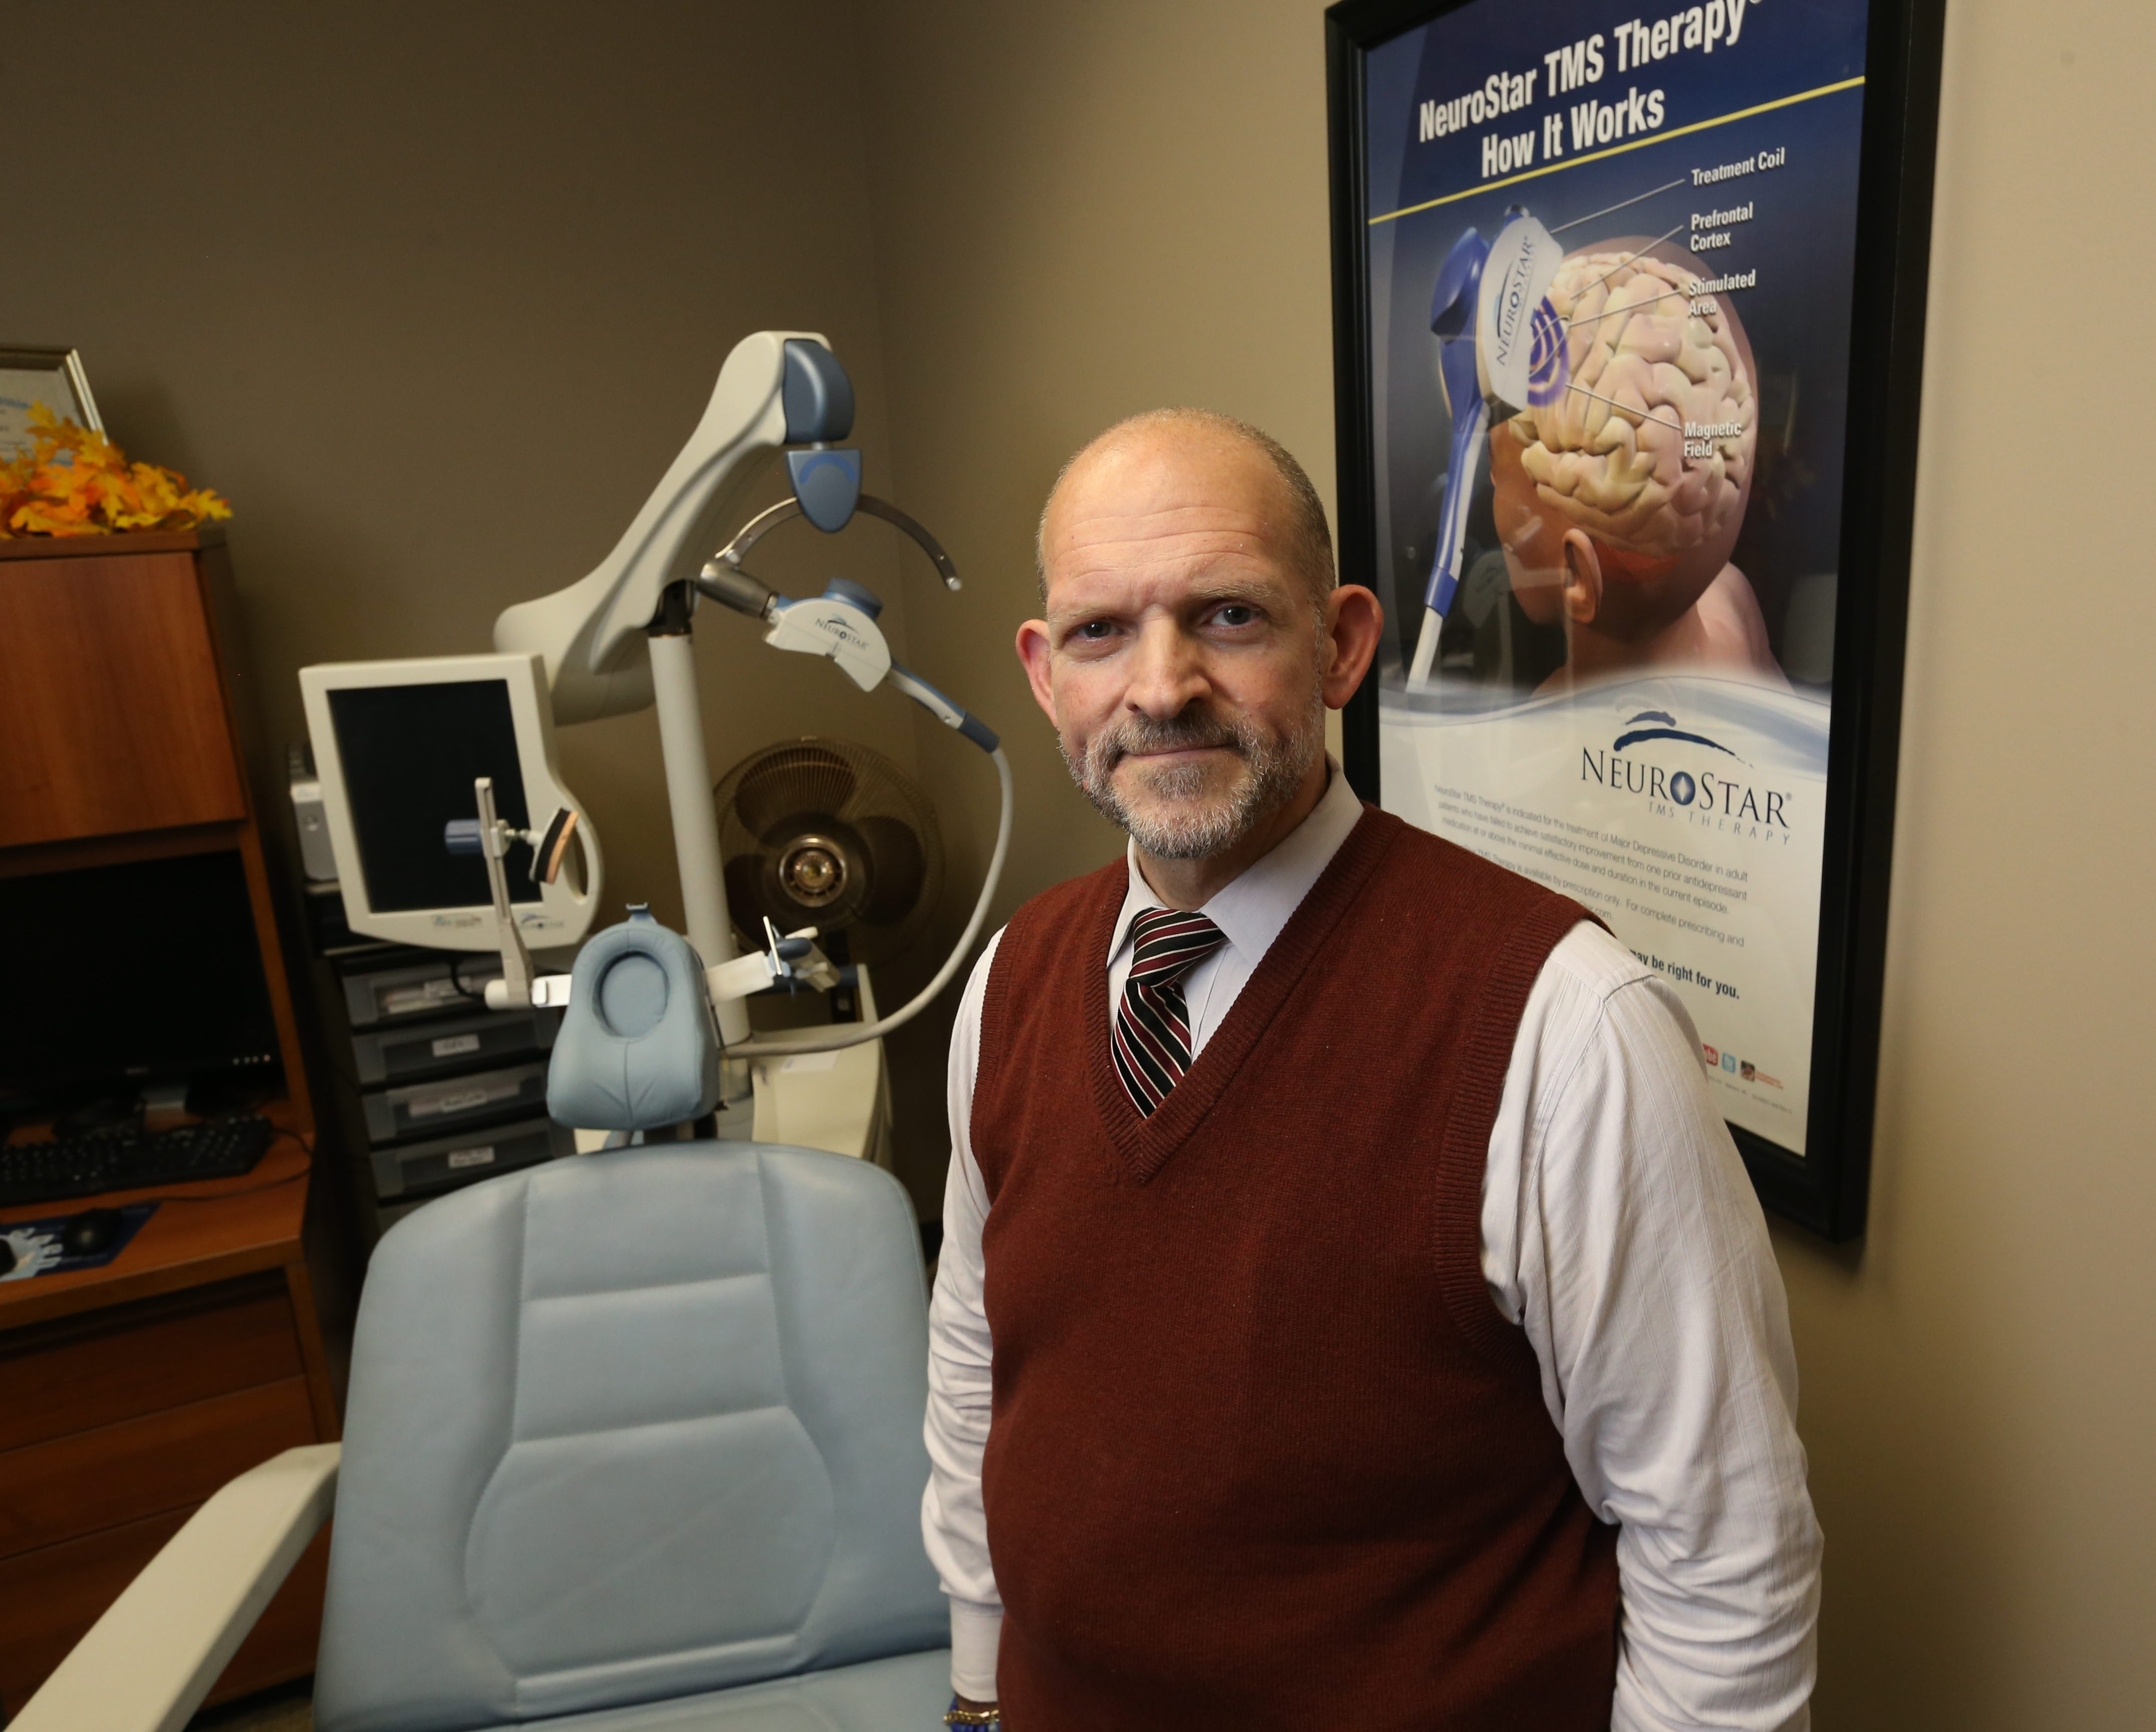 """""""One of the most unique human activities is to think and feel, so to me the brain is the most fascinating area."""" – Dr. Horatio Capote, medical director of the Division of Neuropsychiatry at Dent Neurologic Institute, shown with a Transcranial Magnetic Stimulator (TMS)."""